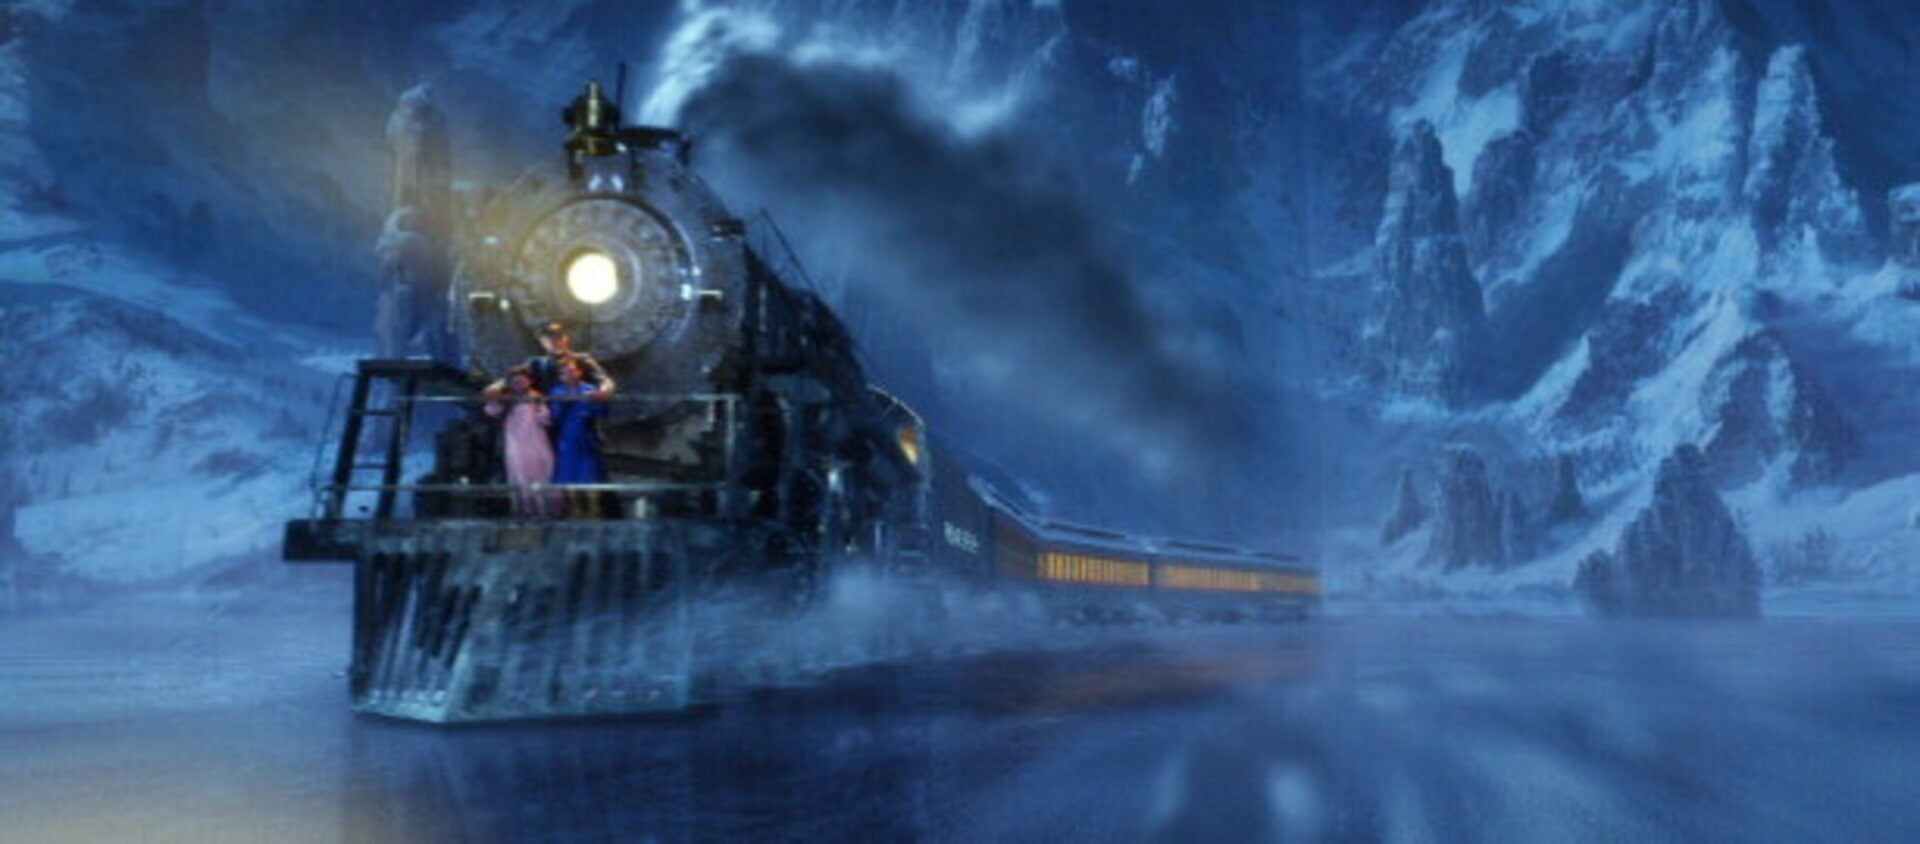 The Polar Express - Image 8